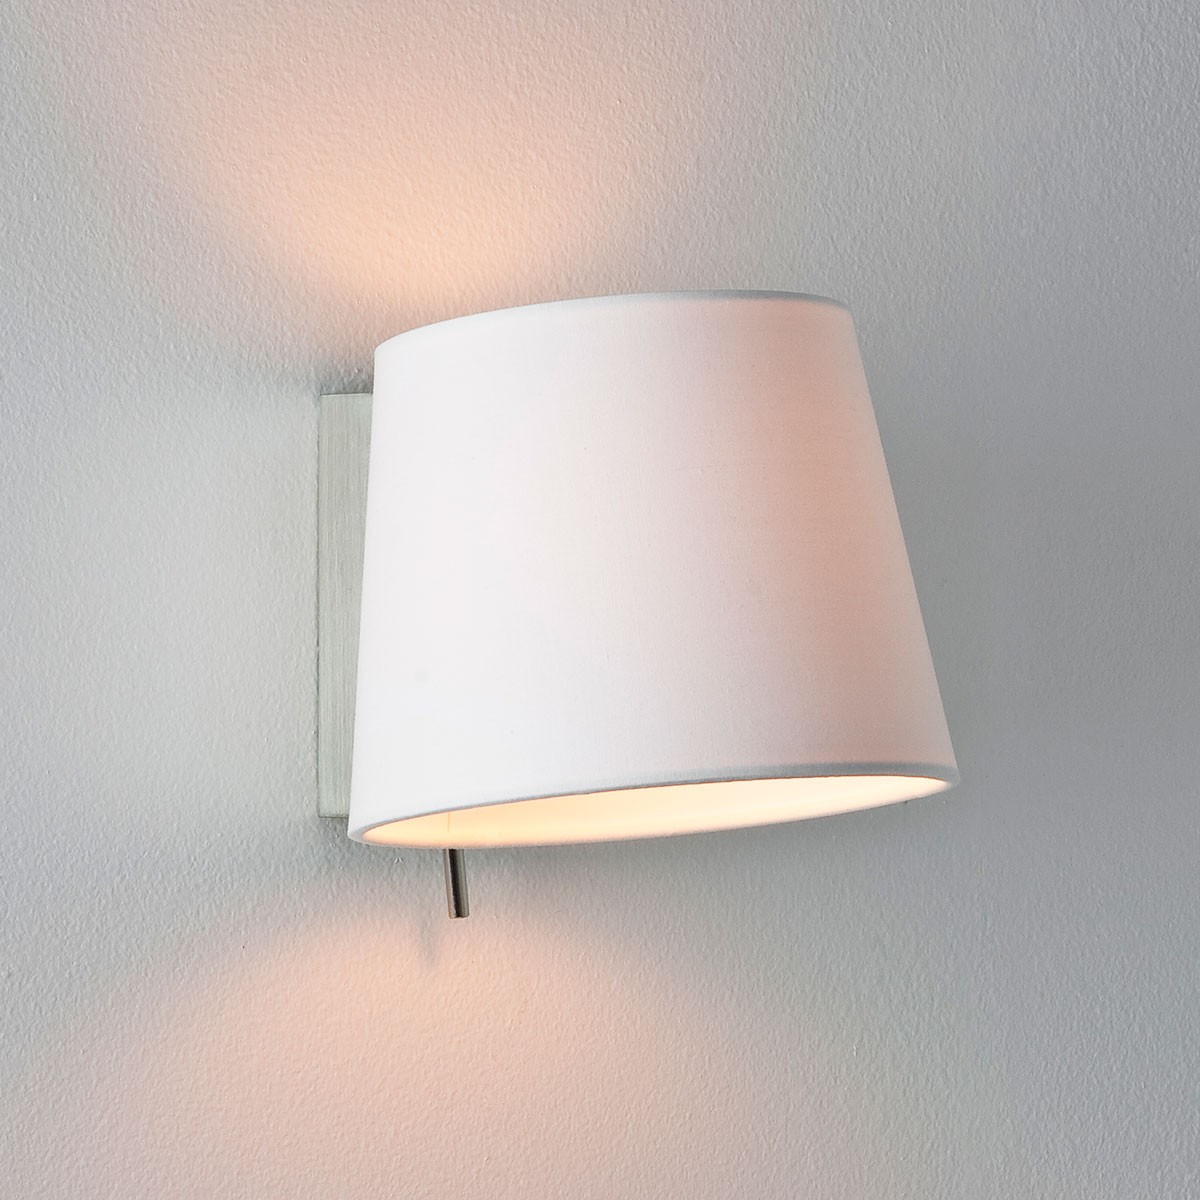 Astro Sala Brushed Nickel Wall Light with White Shade at UK Electrical Supplies.